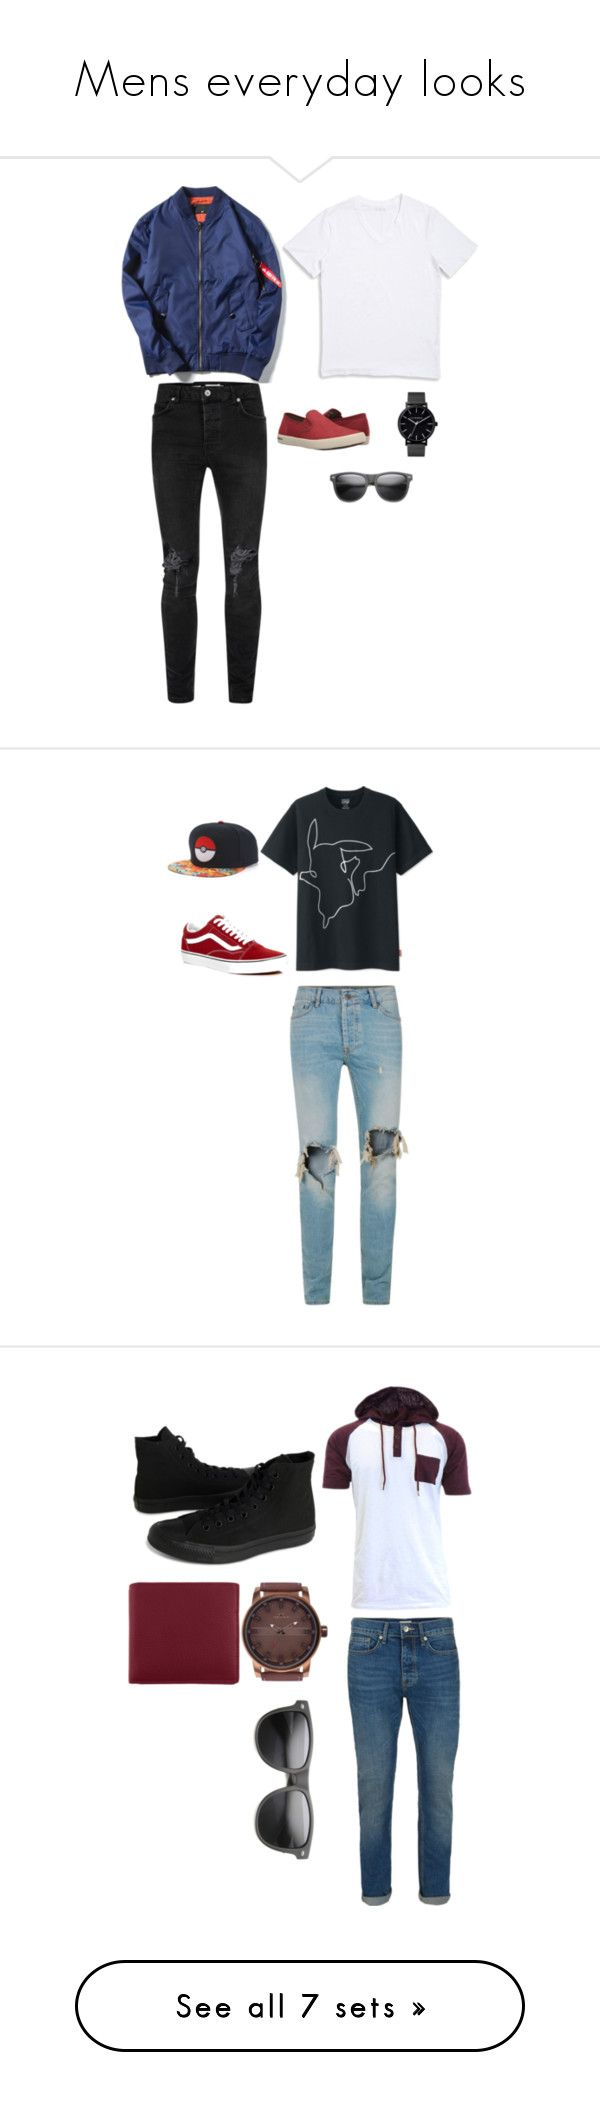 """""""Mens everyday looks"""" by catalinaeb on Polyvore featuring Topman, 1670 HBC, SeaVees, The Horse, ZeroUV, men's fashion, menswear, Uniqlo, Vans and Converse"""